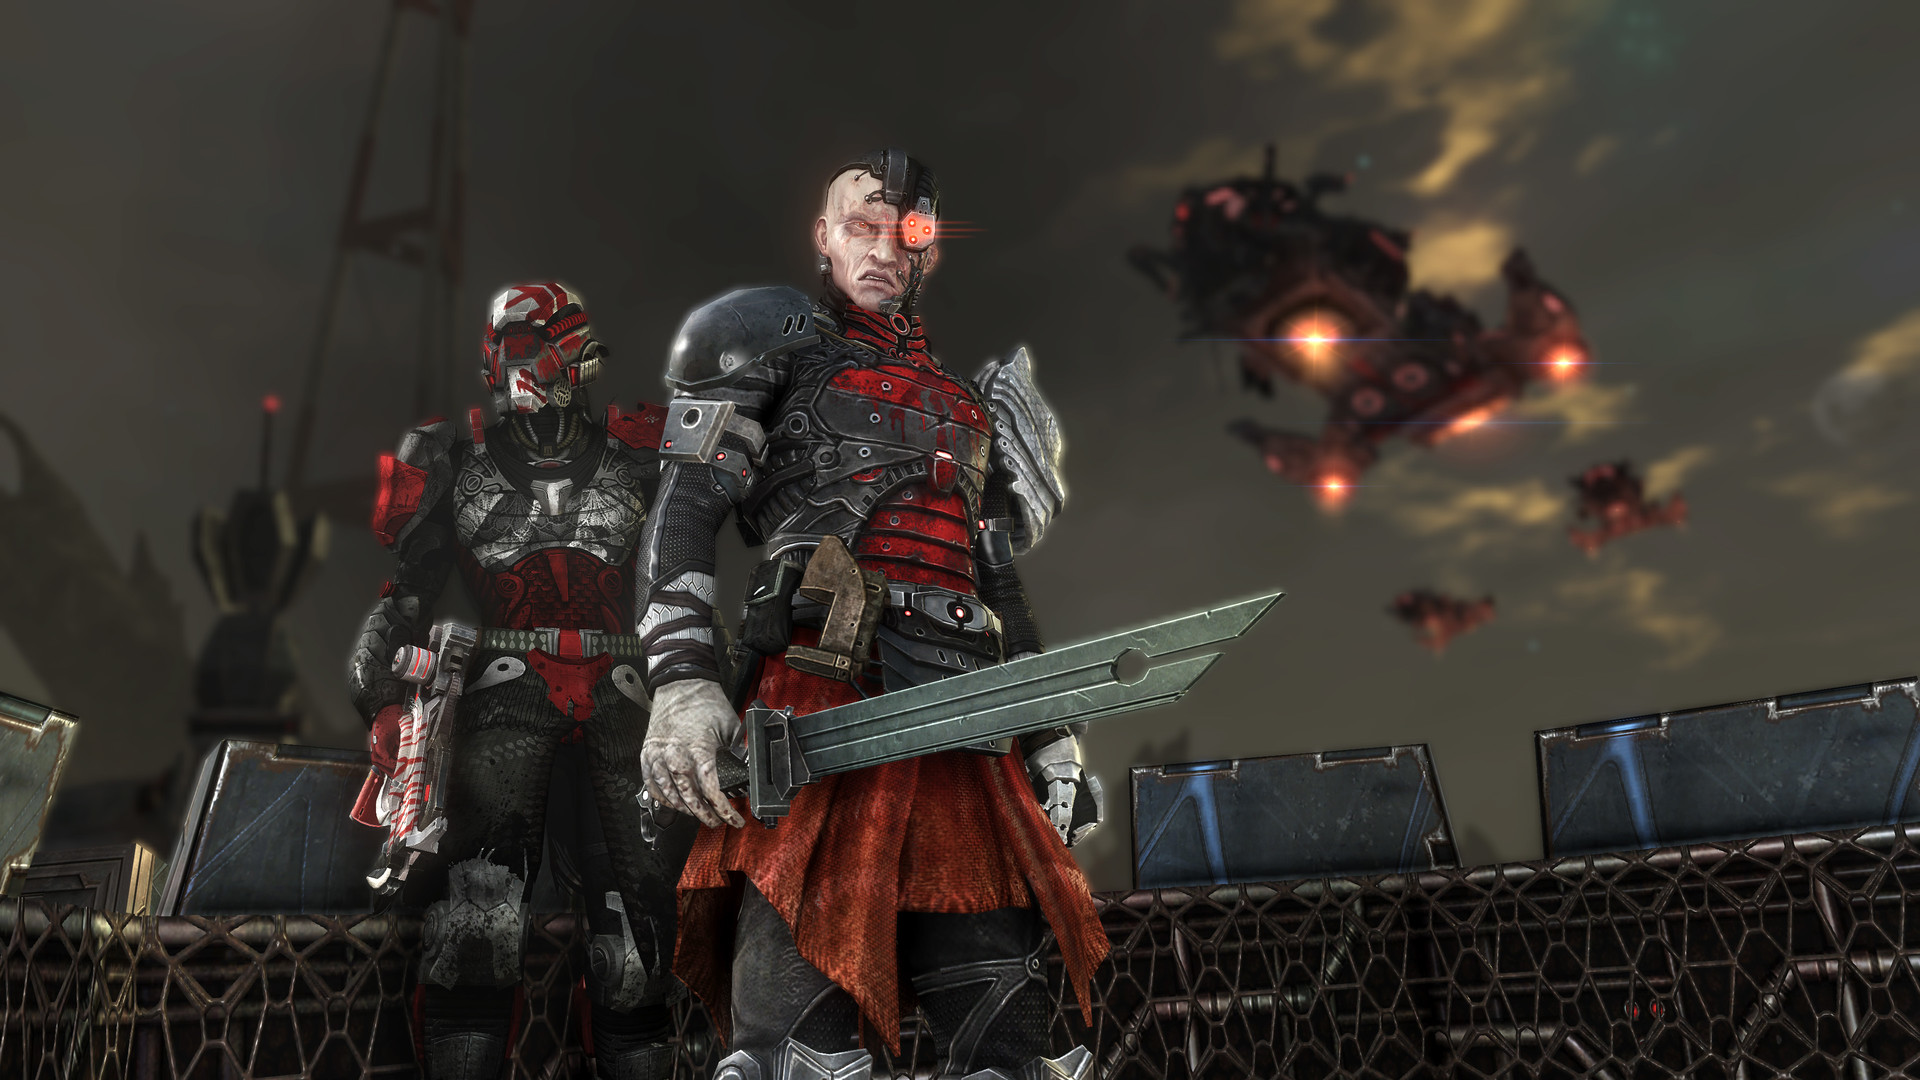 Defiance 2050 Is A Relaunch That Fixes Little Of What Sucked About